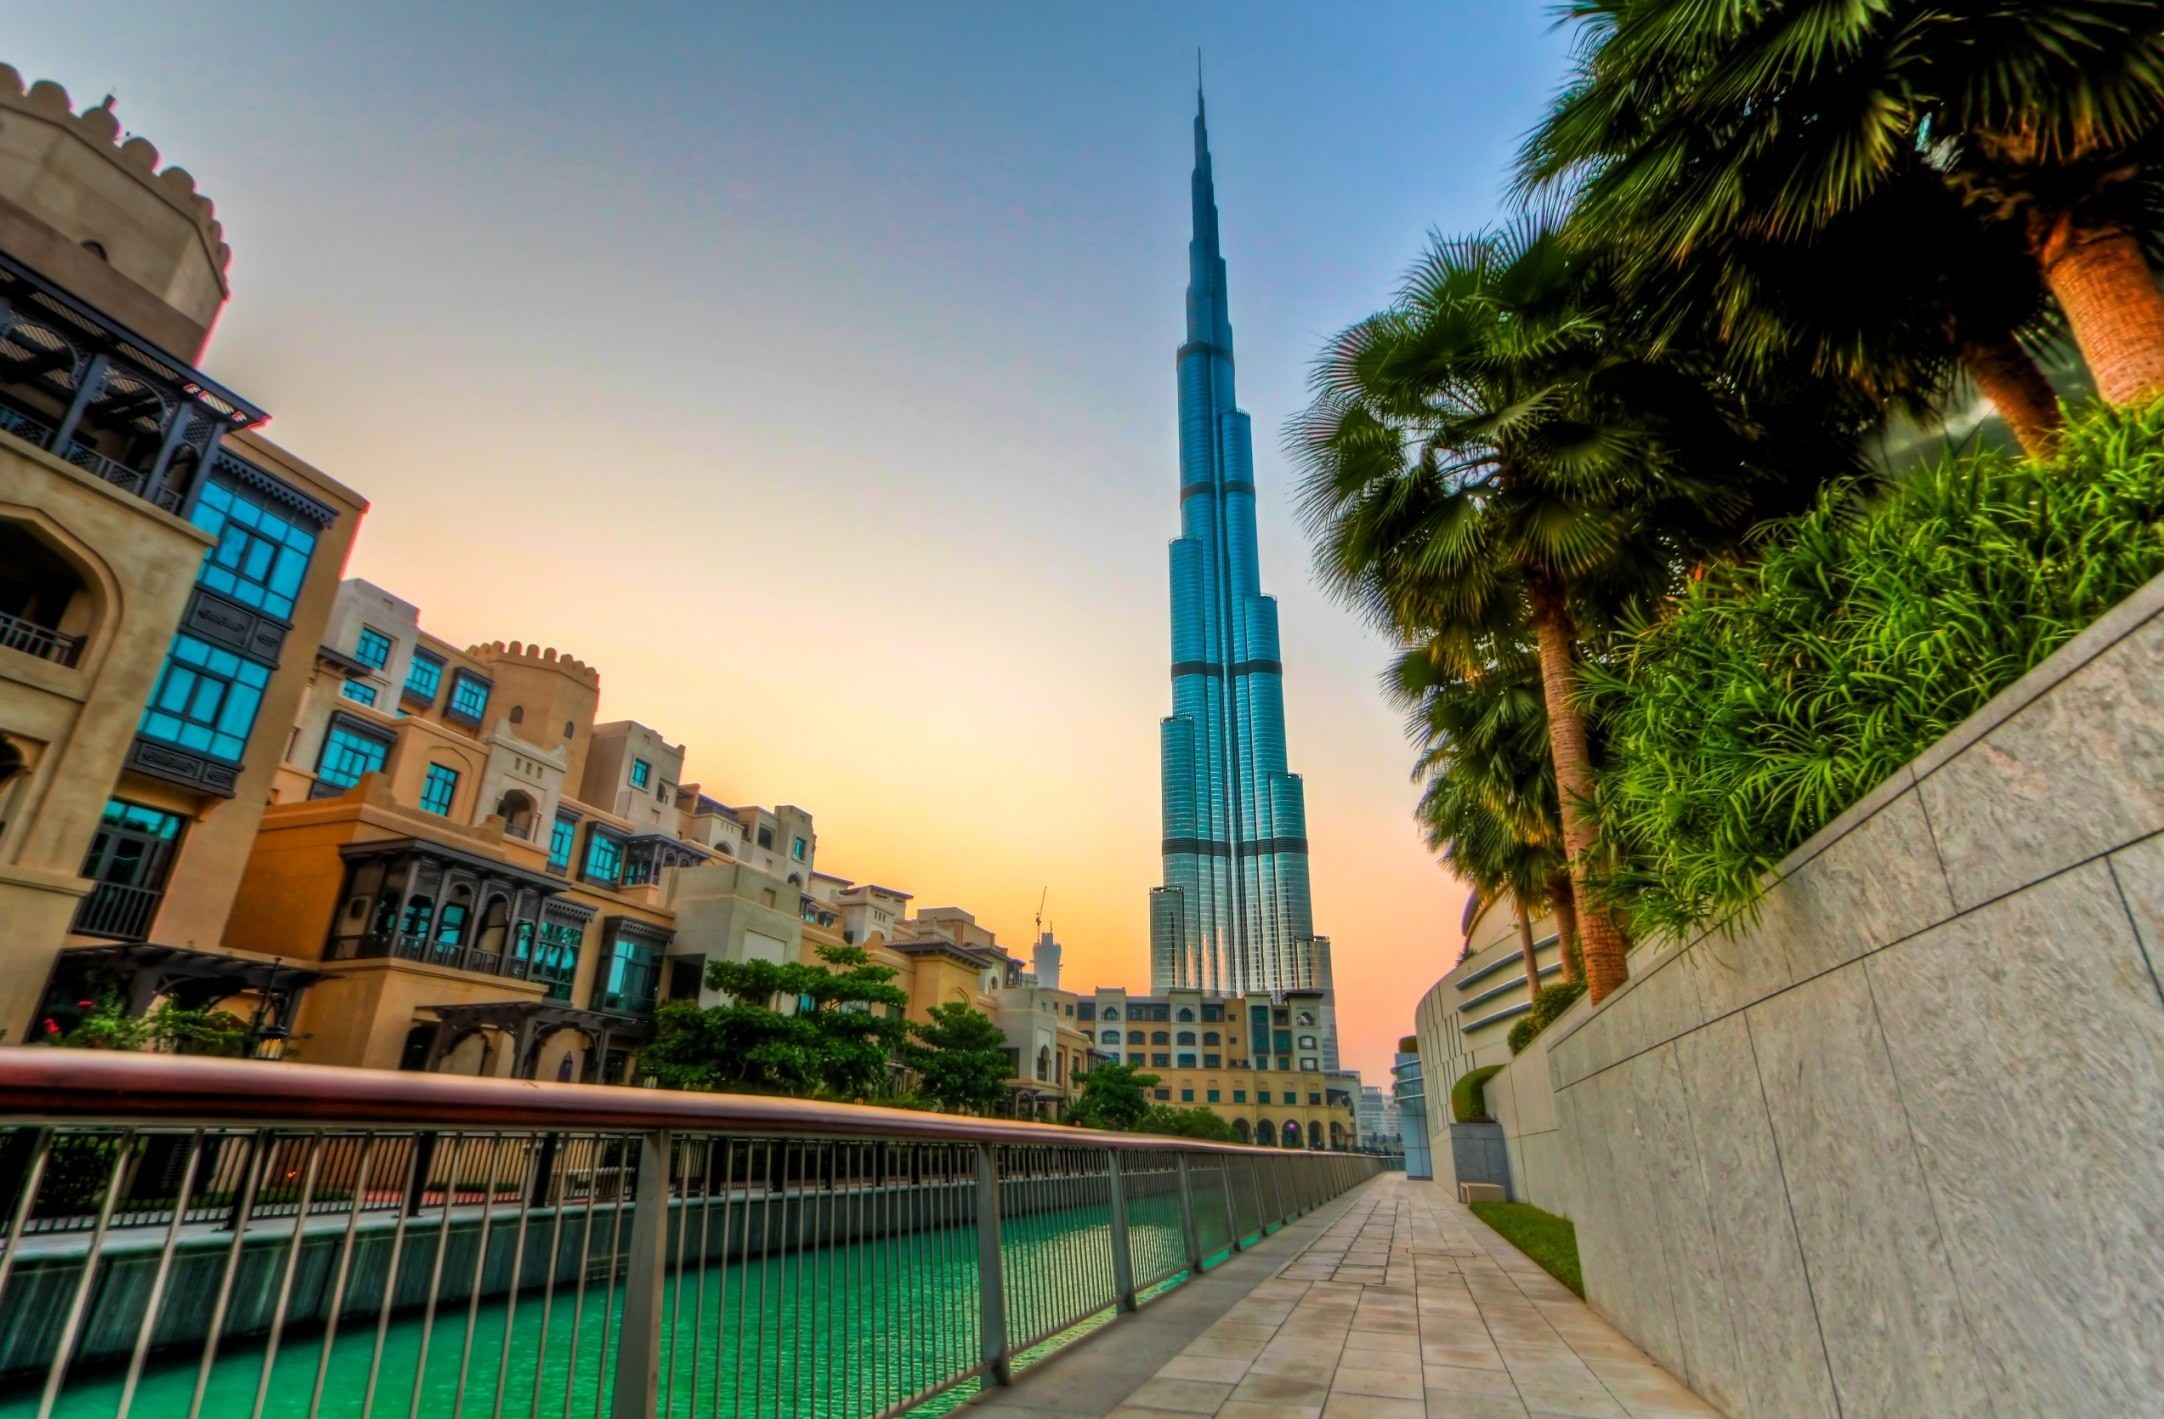 burj khalifa full hd wallpaper and background image | 2164x1419 | id